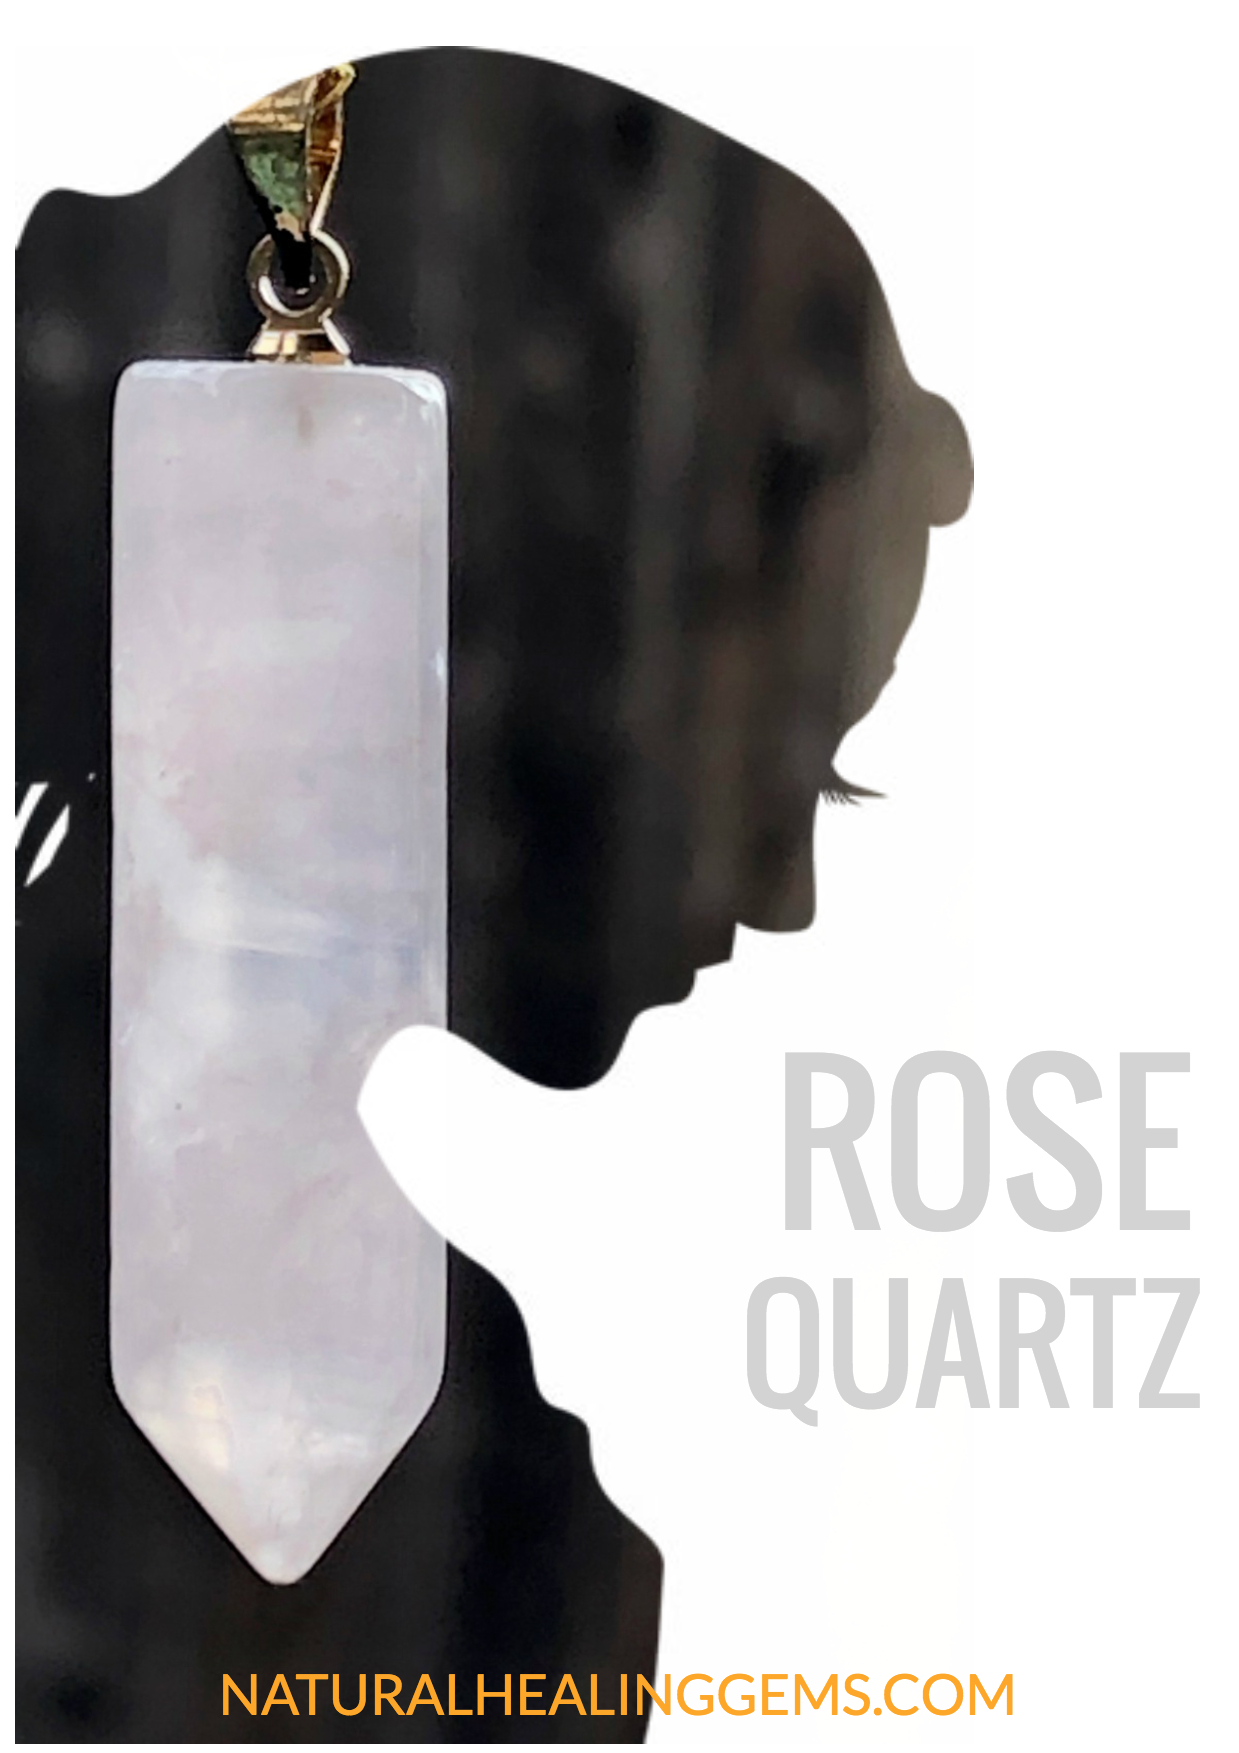 rose quartz self-love AD.jpg